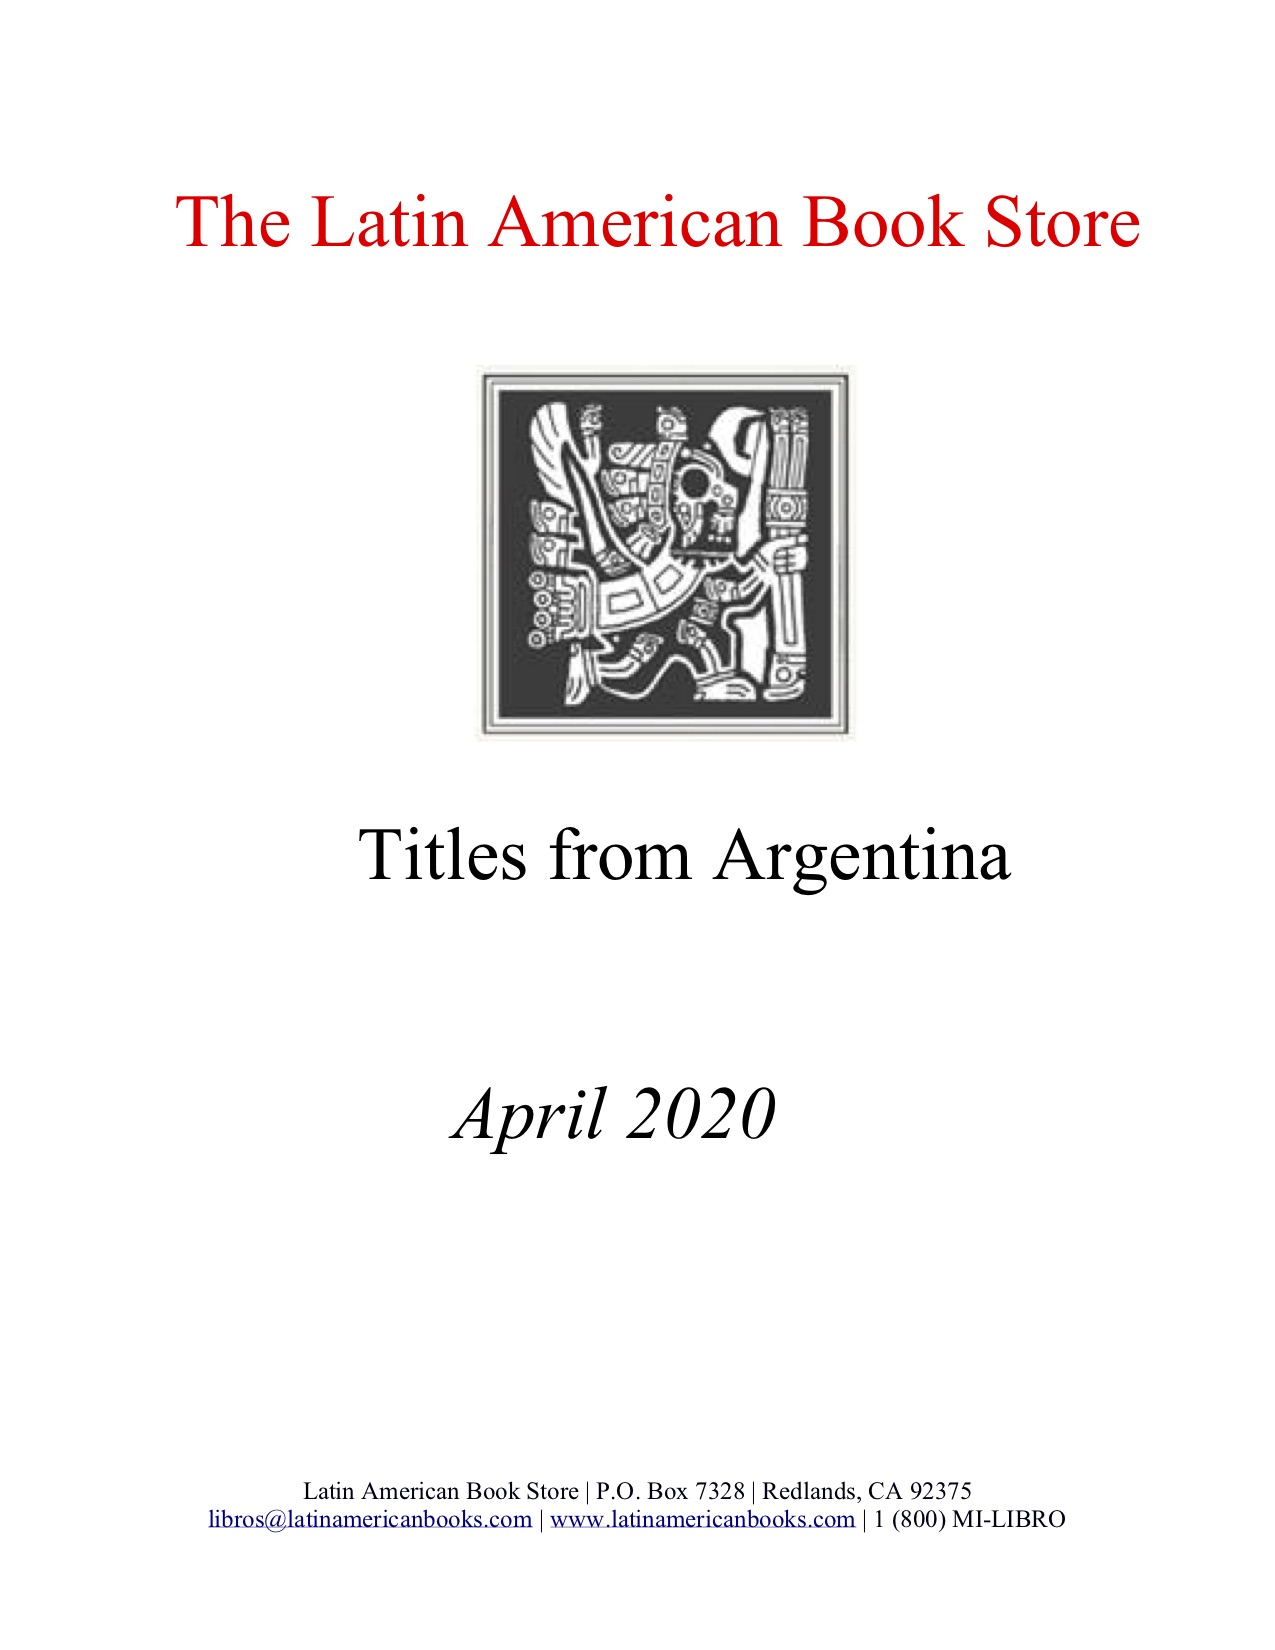 Argentine Titles -- April 2020